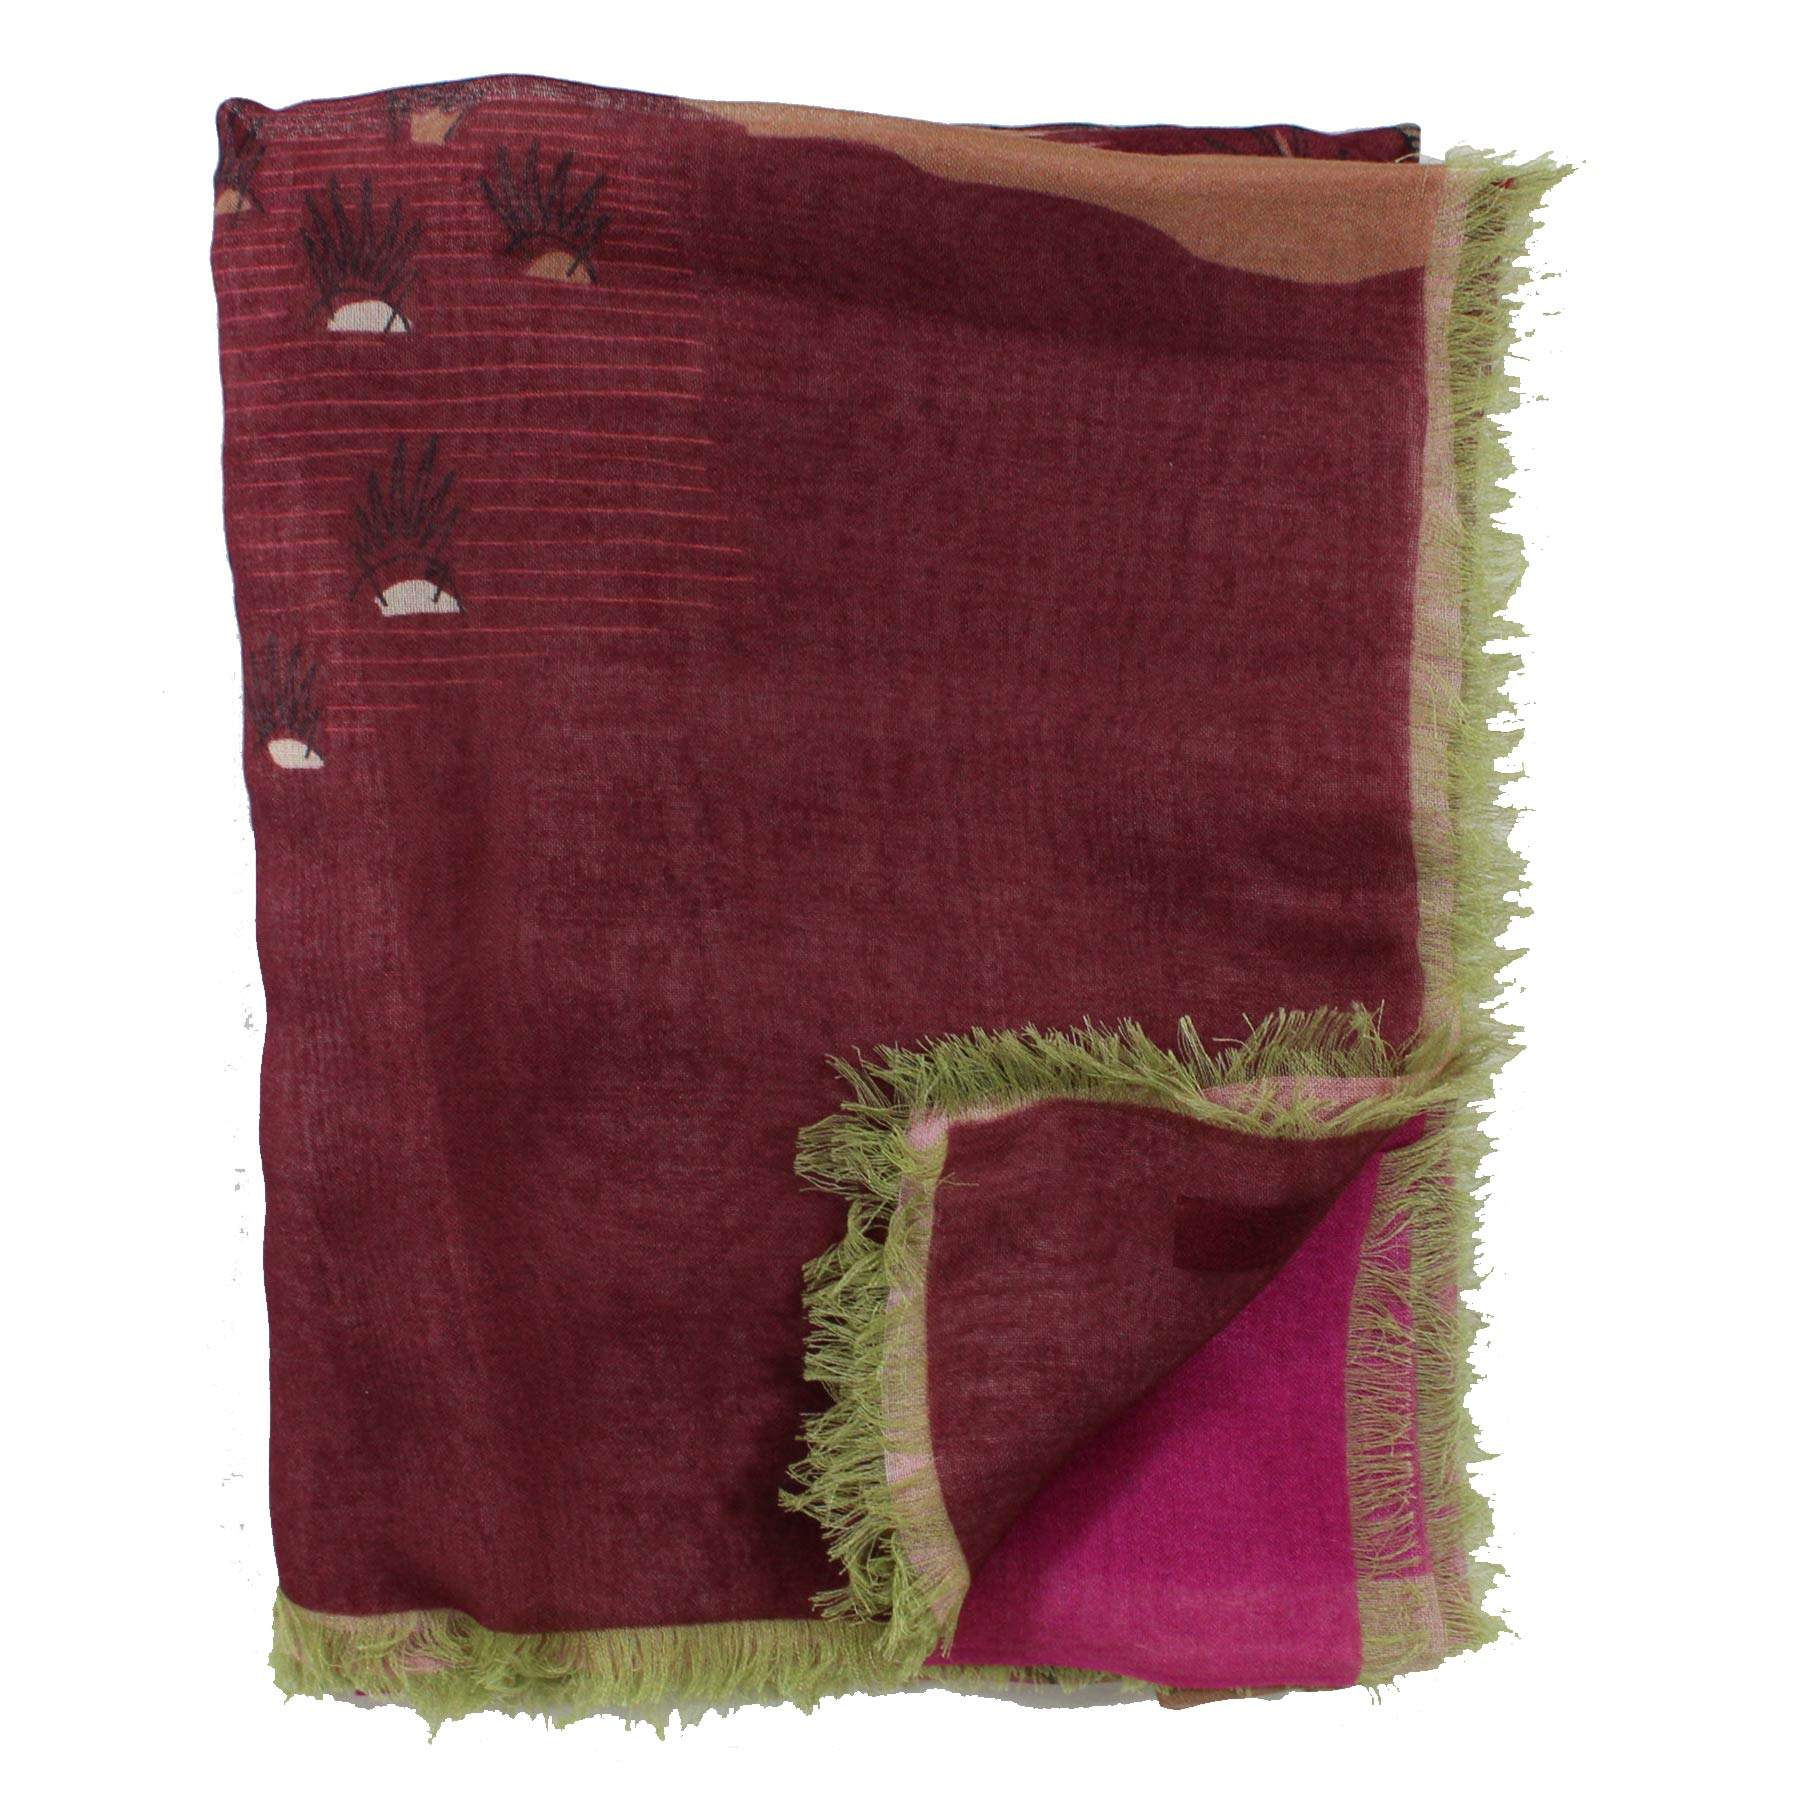 Valentino Scarf Bordeaux Design Zandra Rhodes for Valentino Cashmere Blend - Extra Large Square Wrap